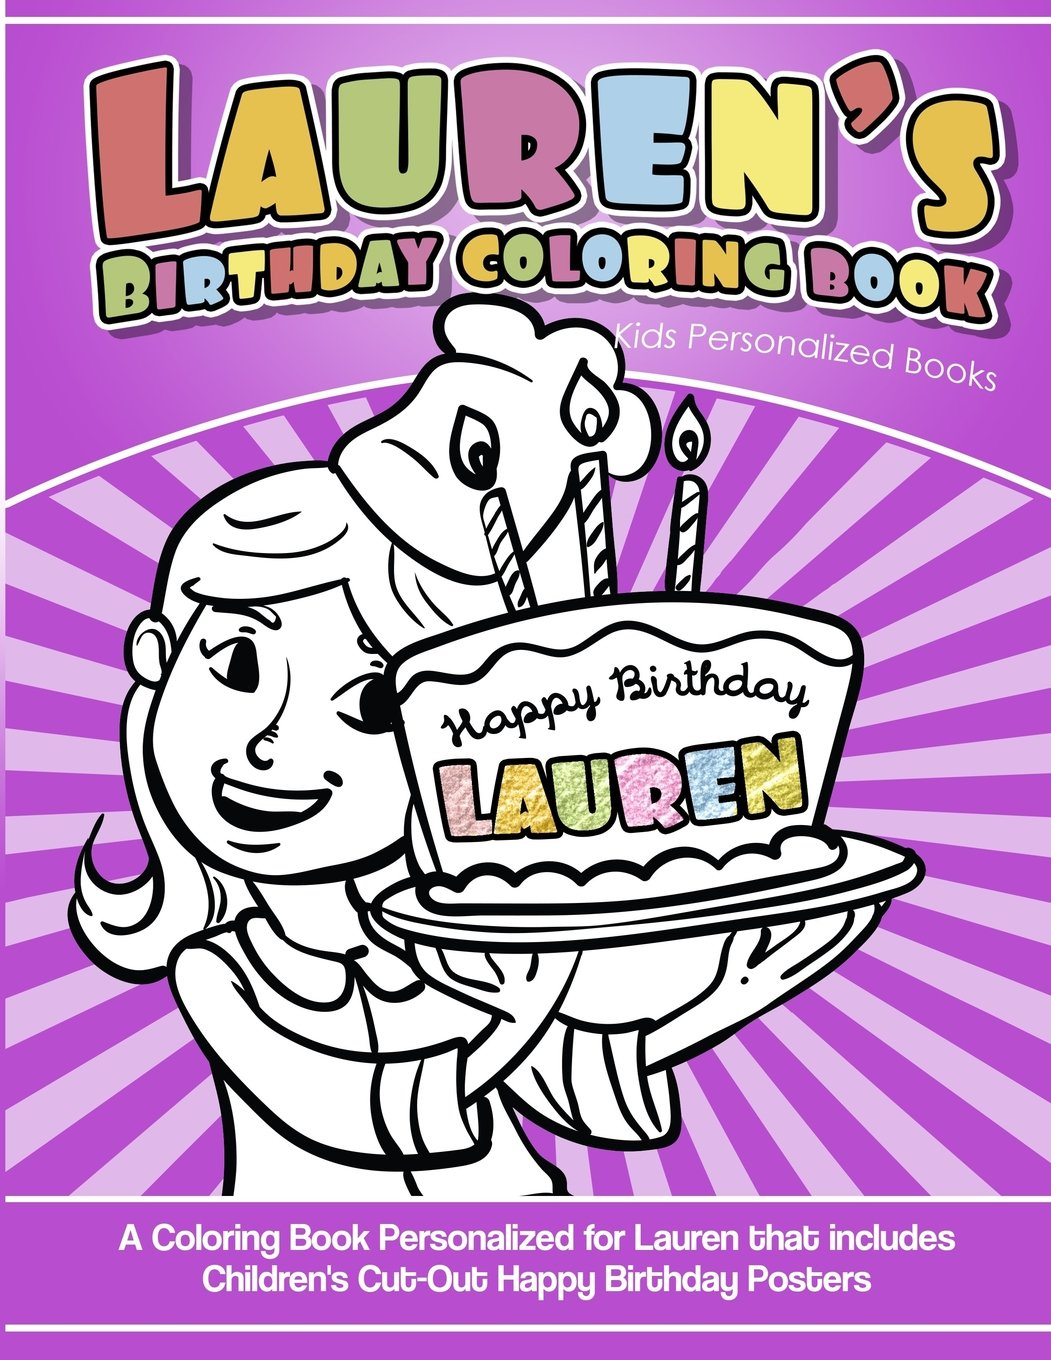 Lauren's Birthday Coloring Book Kids Personalized Books: A Coloring Book Personalized for Lauren that includes Children's Cut Out Happy Birthday Posters pdf epub